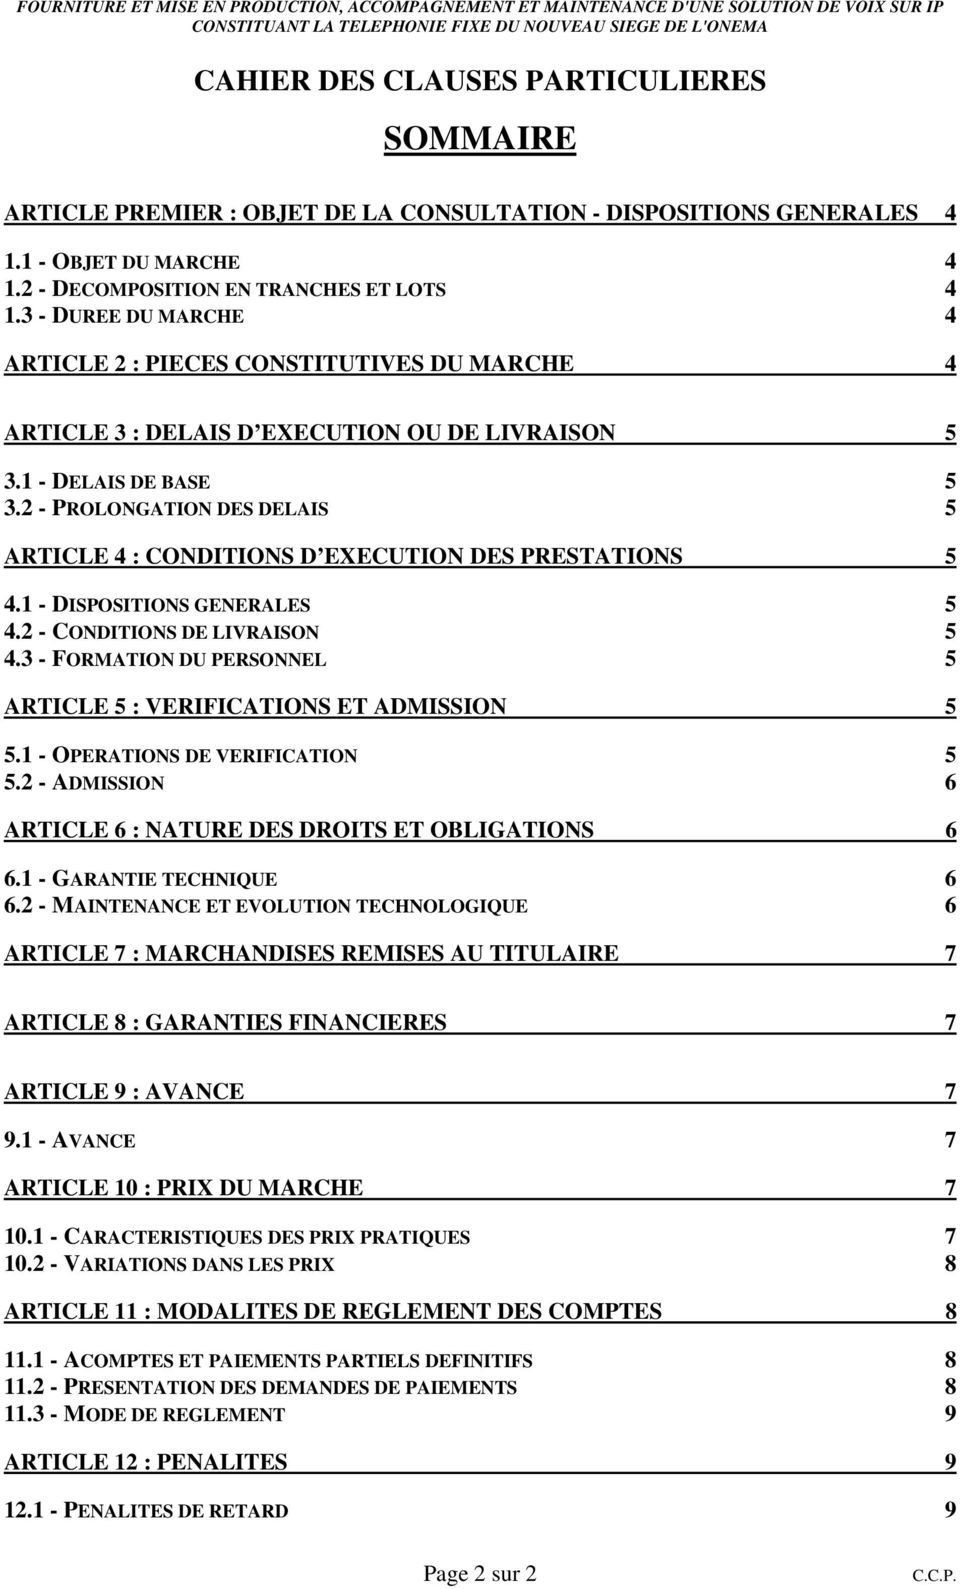 2 - PROLONGATION DES DELAIS 5 ARTICLE 4 : CONDITIONS D EXECUTION DES PRESTATIONS 5 4.1 - DISPOSITIONS GENERALES 5 4.2 - CONDITIONS DE LIVRAISON 5 4.